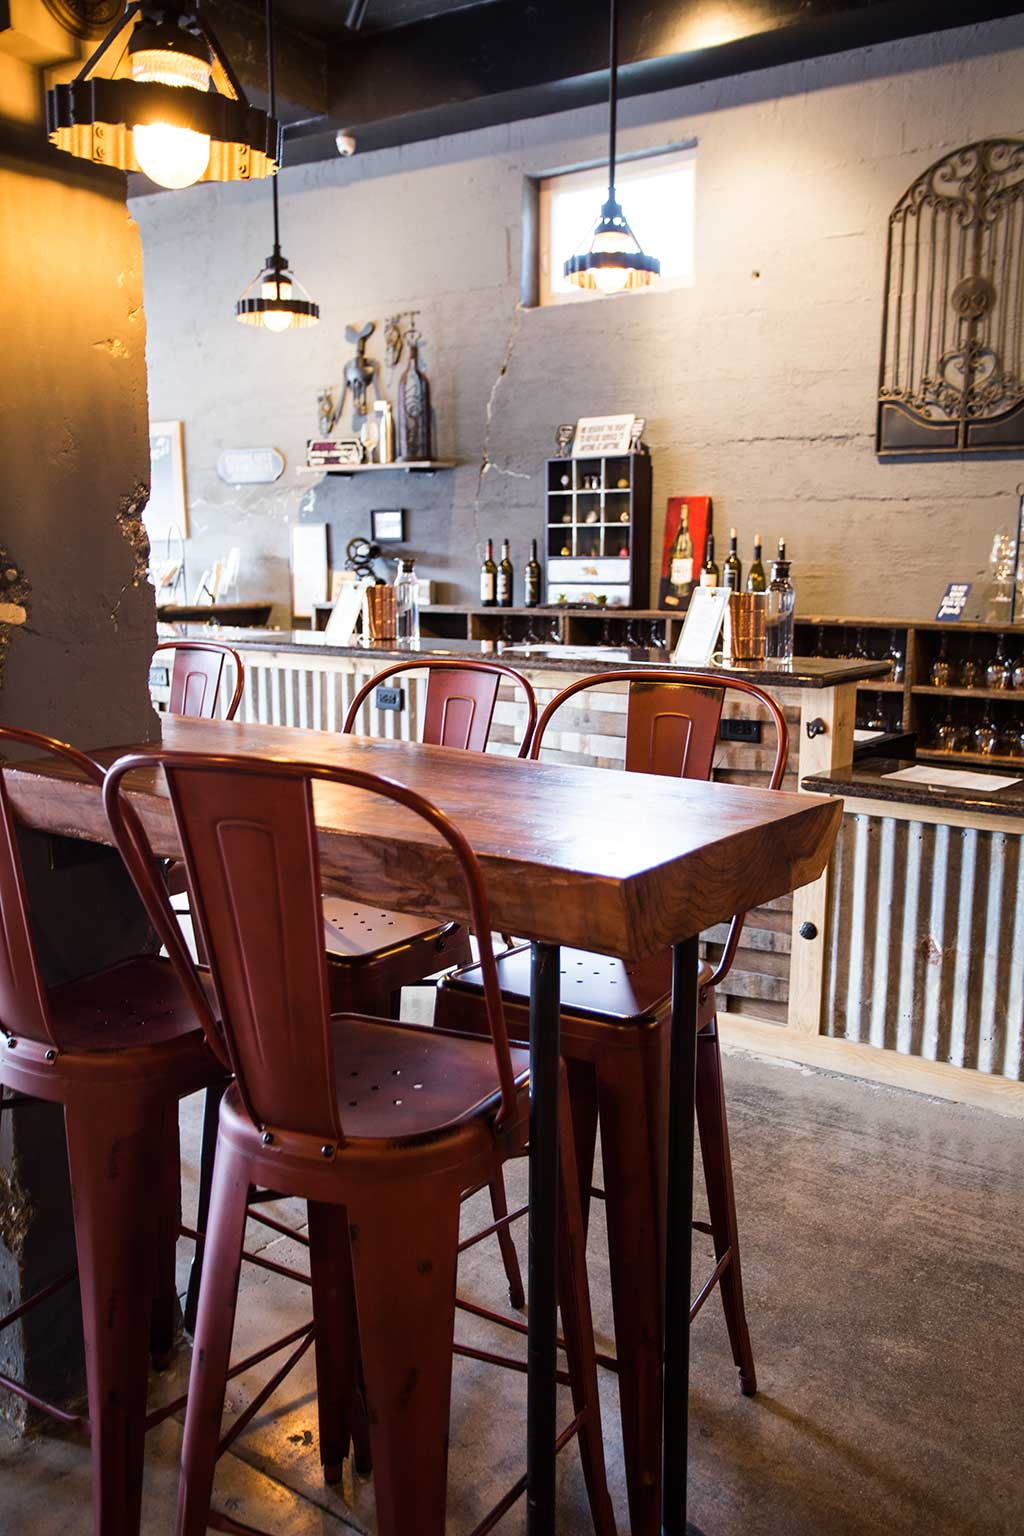 drive-swim-fly-18th-barrel-wine-and-beer-tasting-room-san-juan-bautista-california-alcohol-wine-side-seating